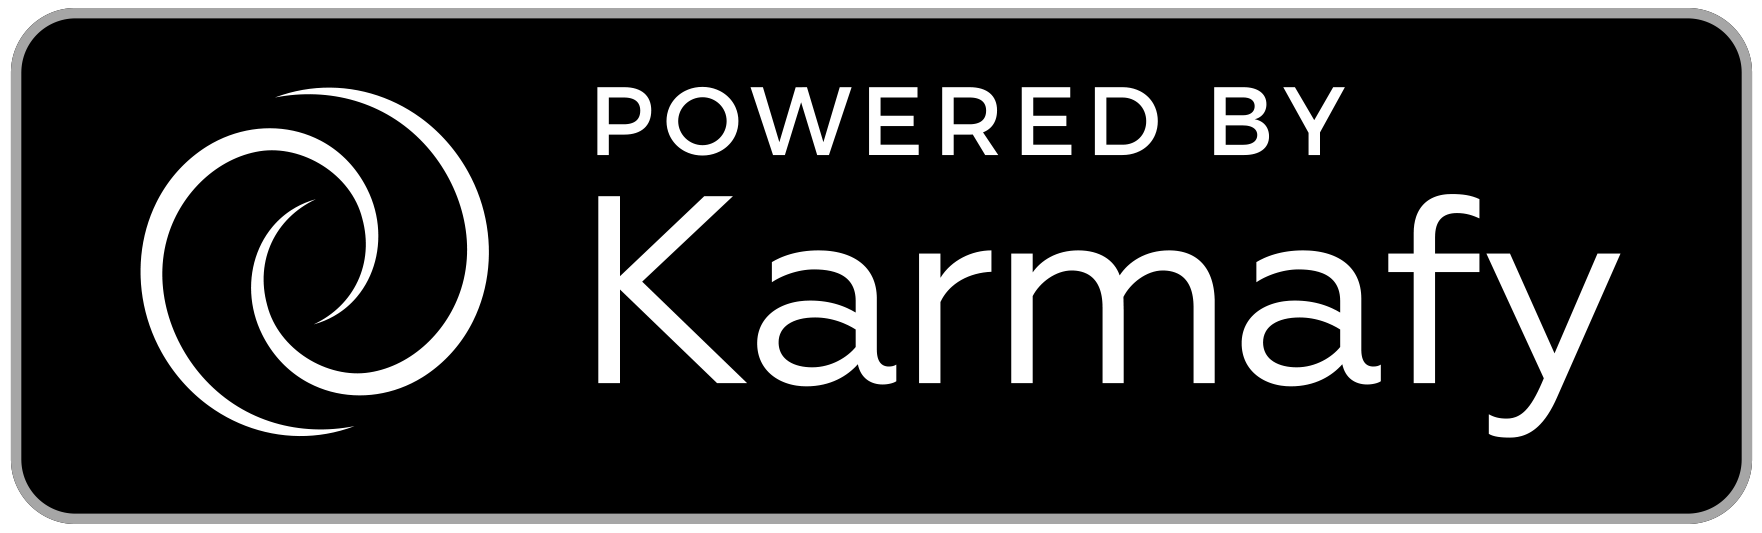 karmafy-powered-by.png